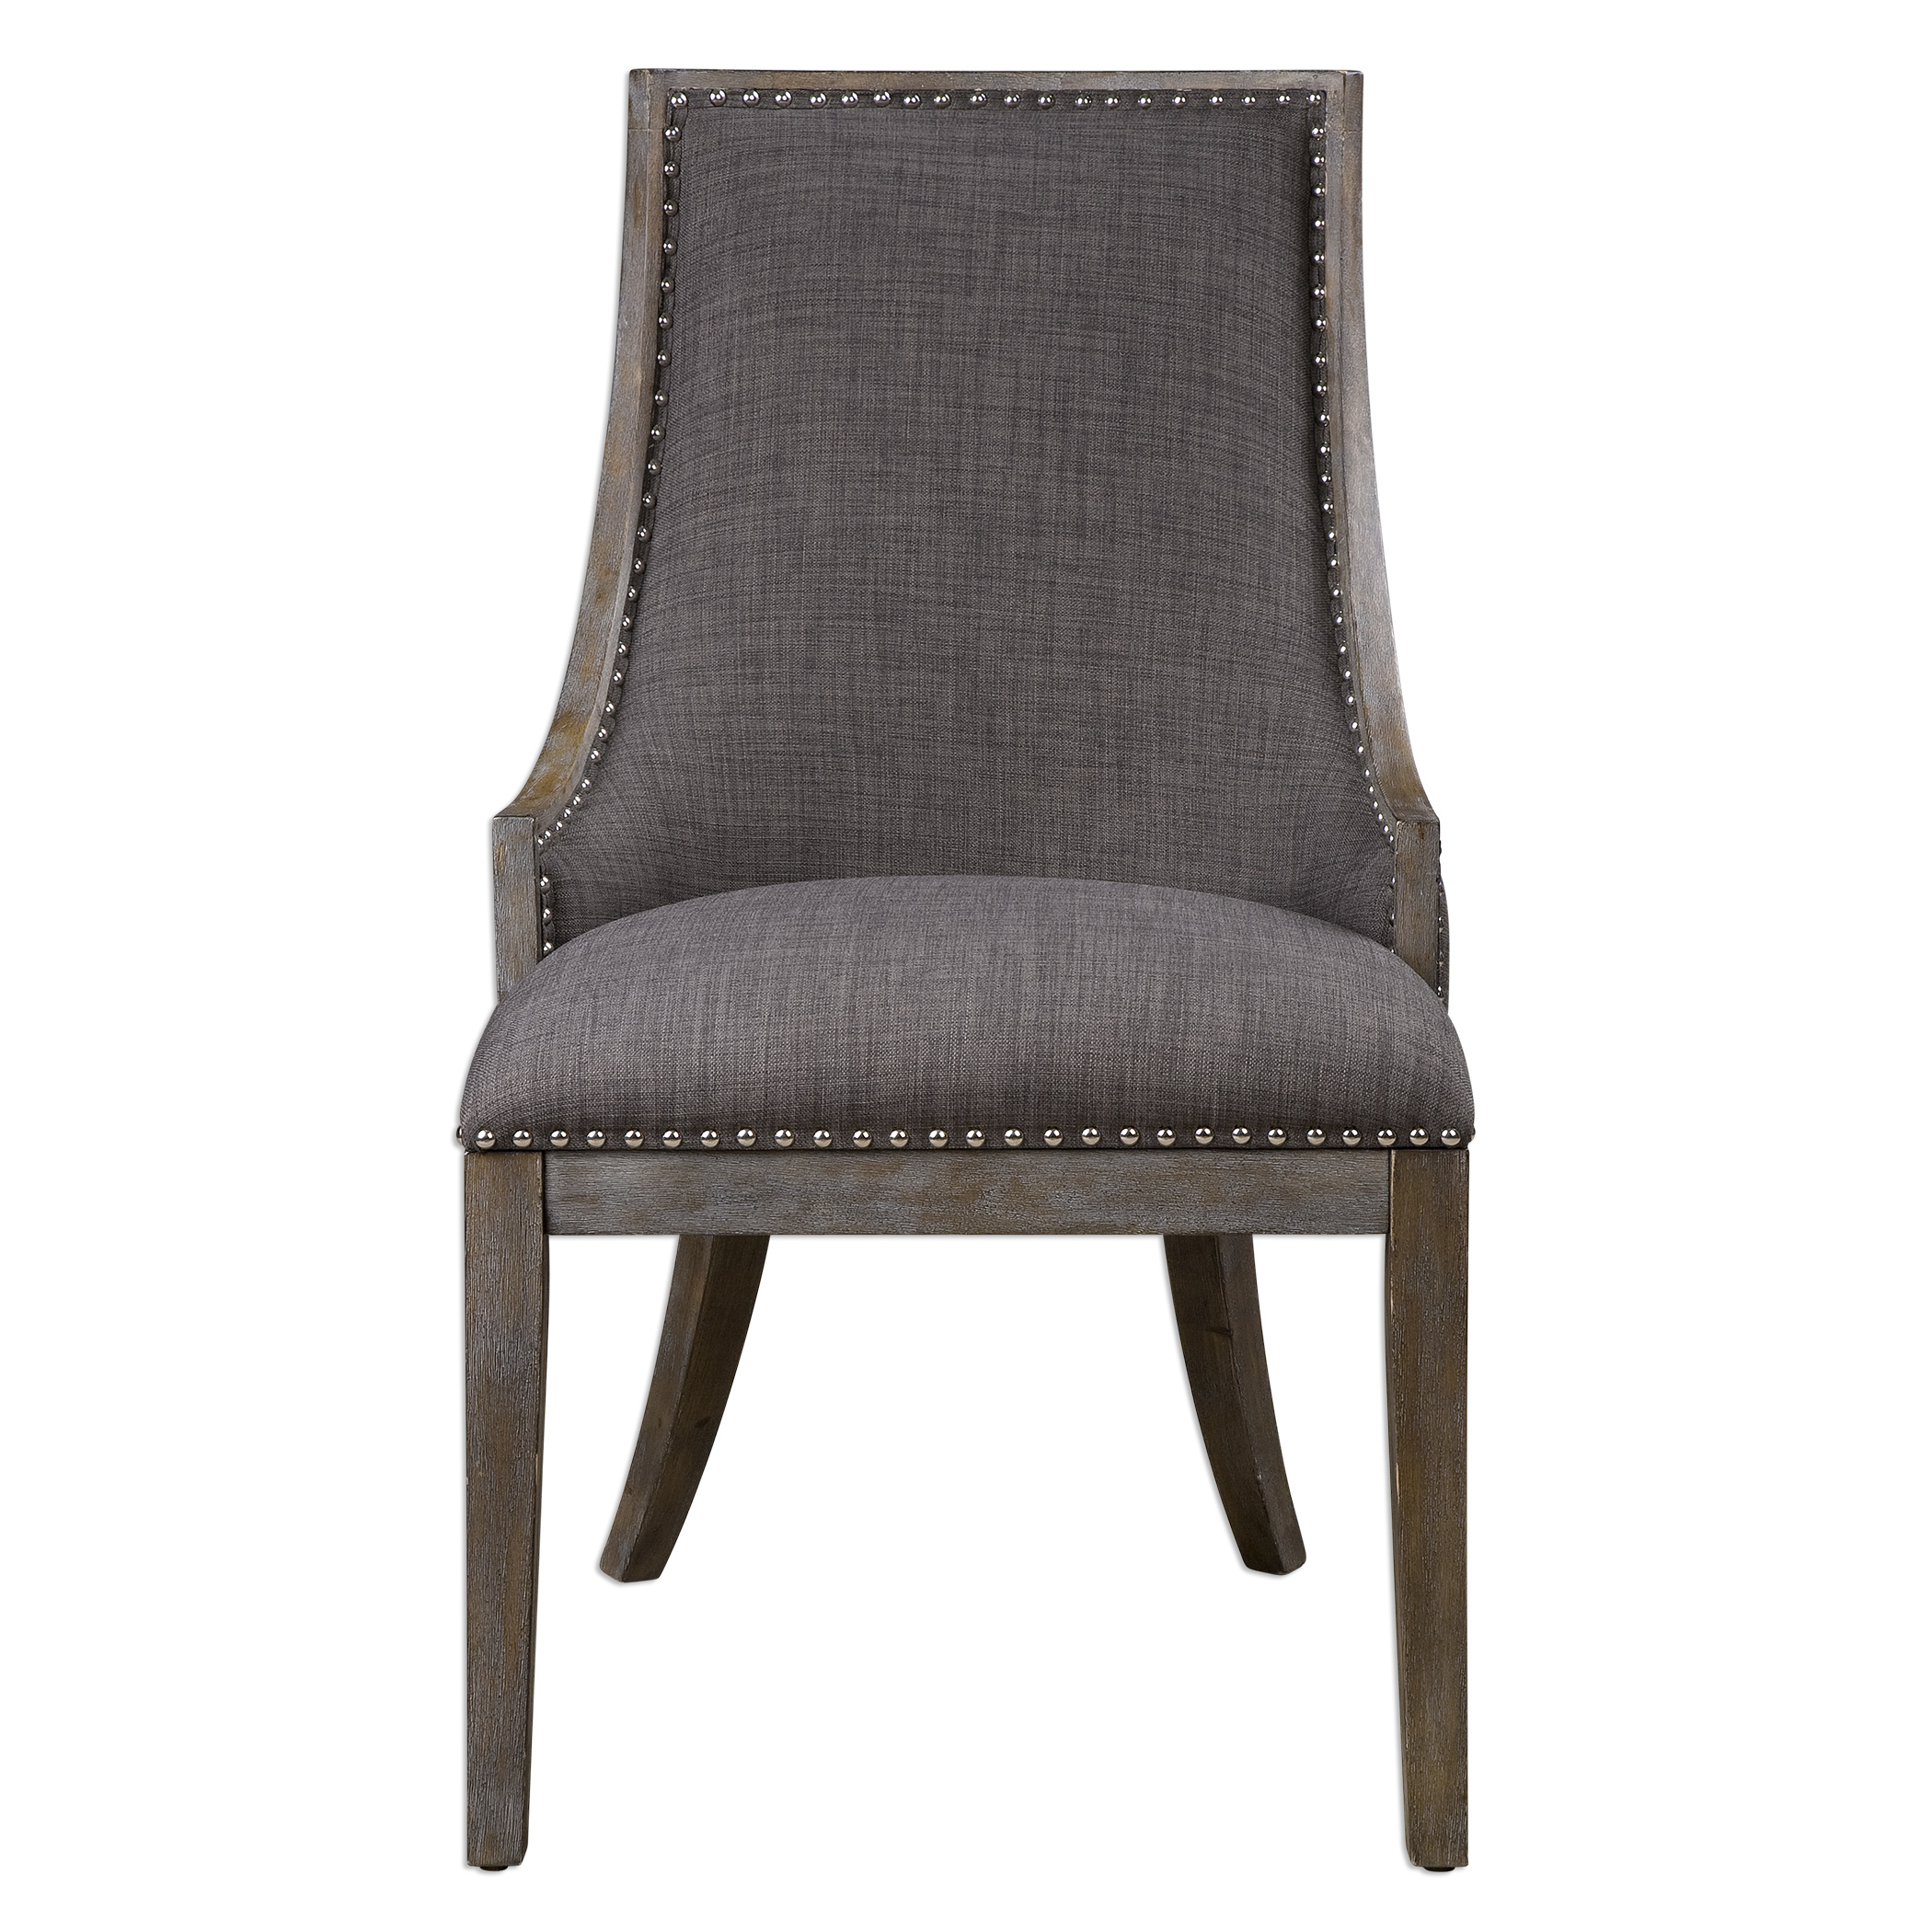 Accent Furniture - Accent Chairs Aidrian Charcoal Gray Accent Chair by Uttermost at Suburban Furniture